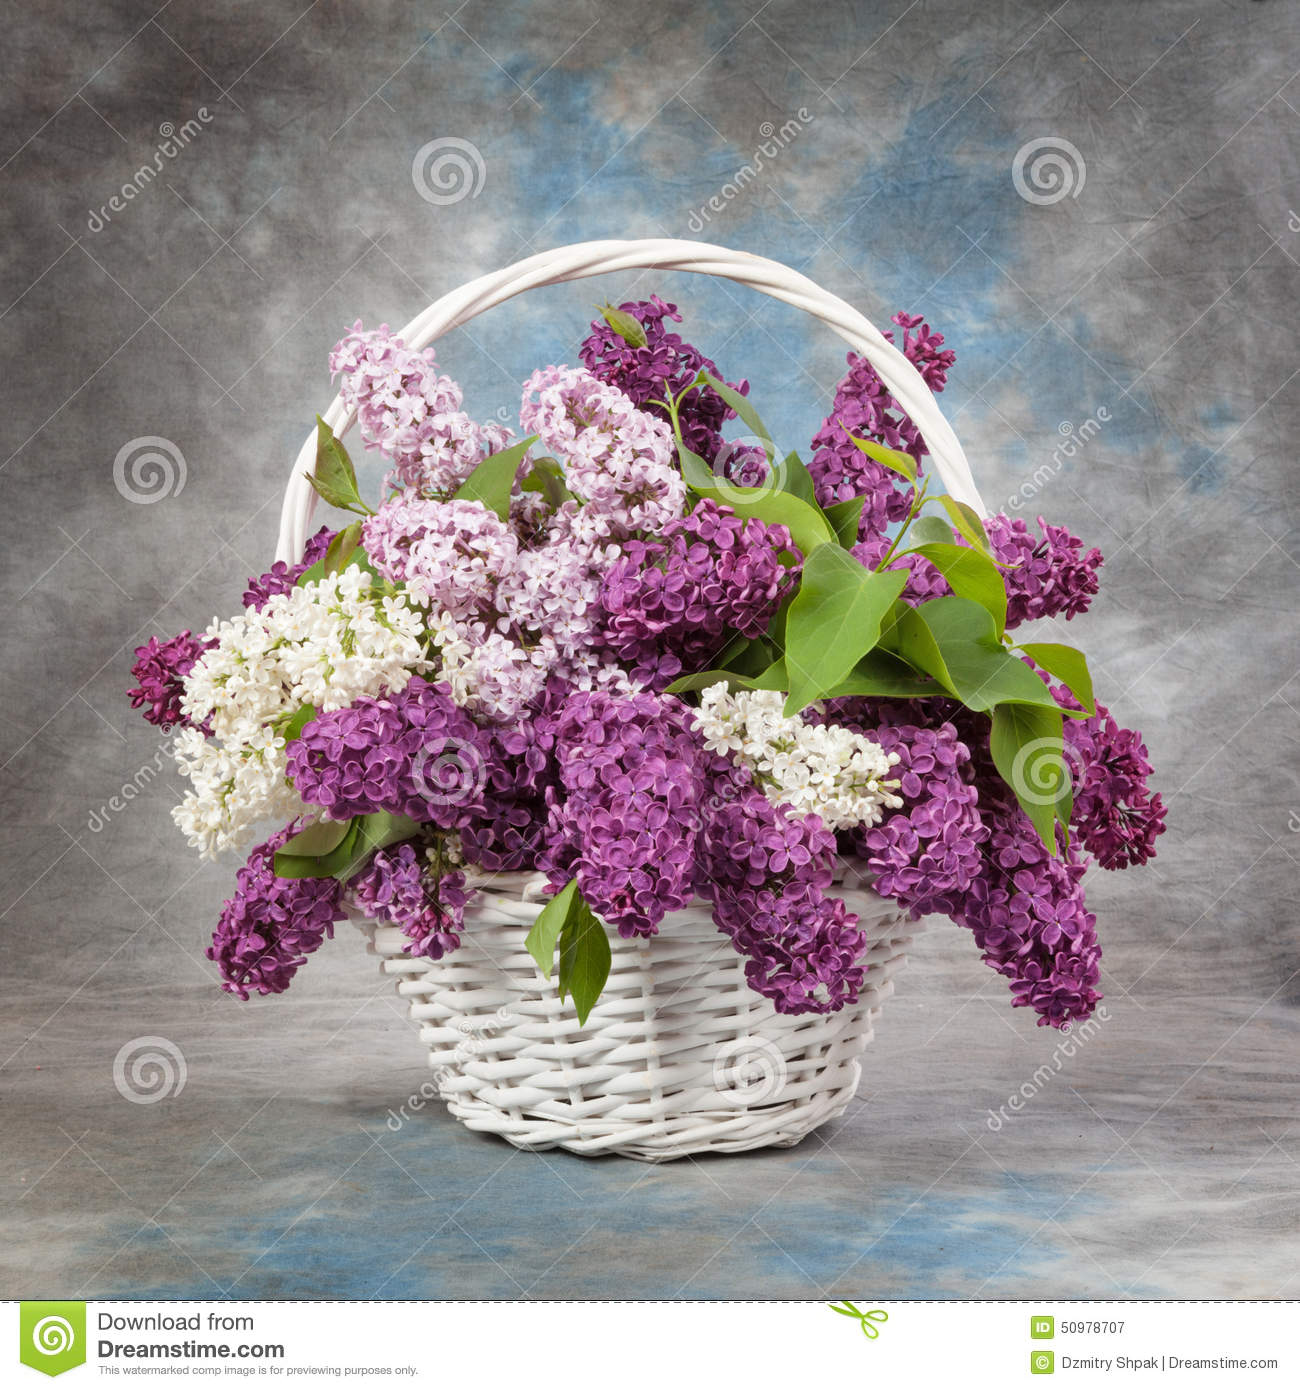 Bouquet de source le muguet et lilas dans un panier photo - Bouquet de muguet photo ...